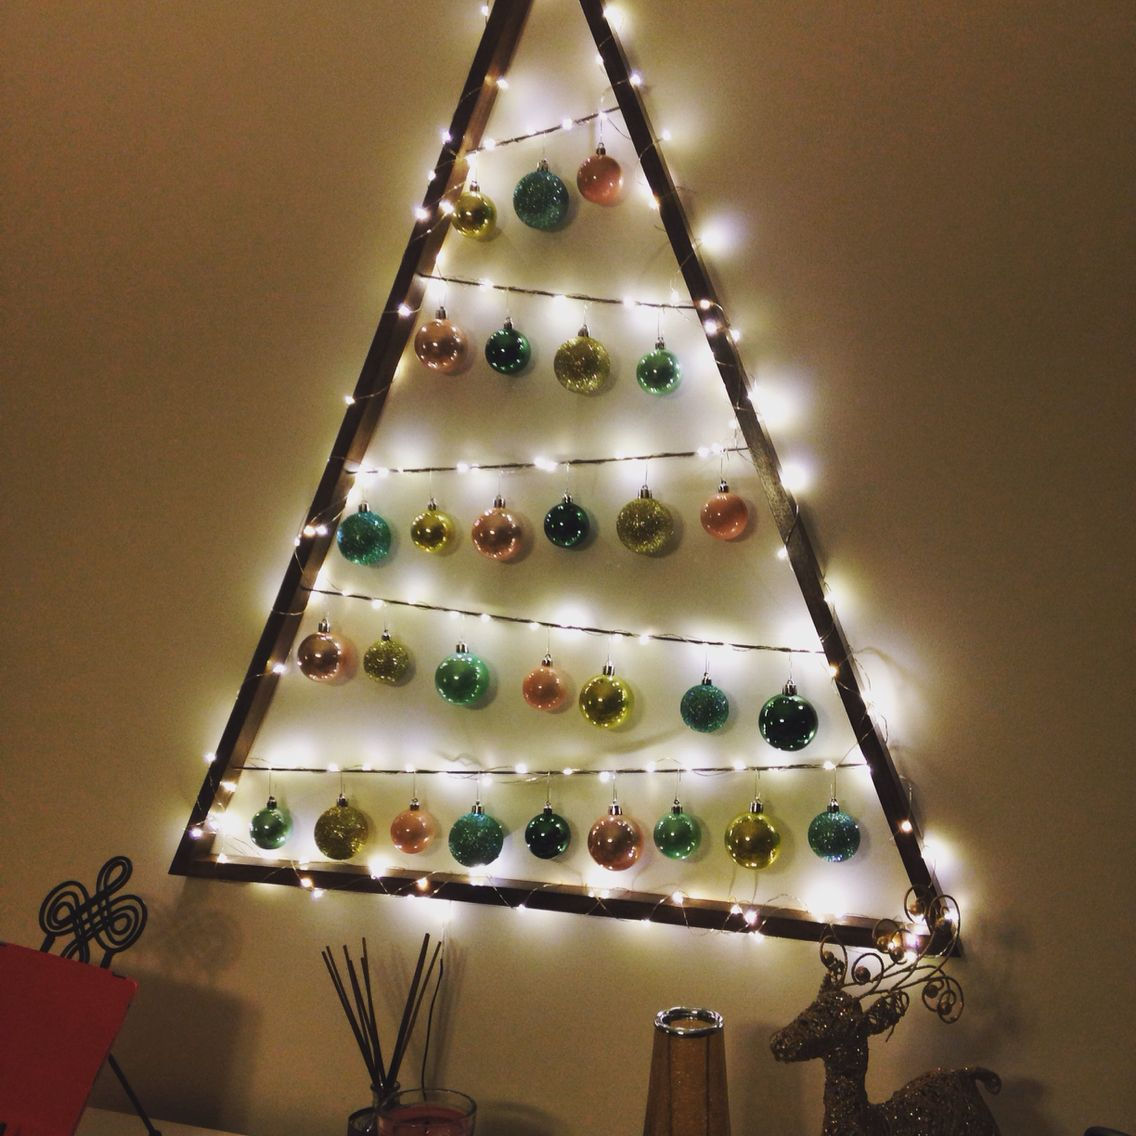 Cat Proof Christmas Tree.Alternate Christmas Tree Kitten Proof So Far Cat Proof